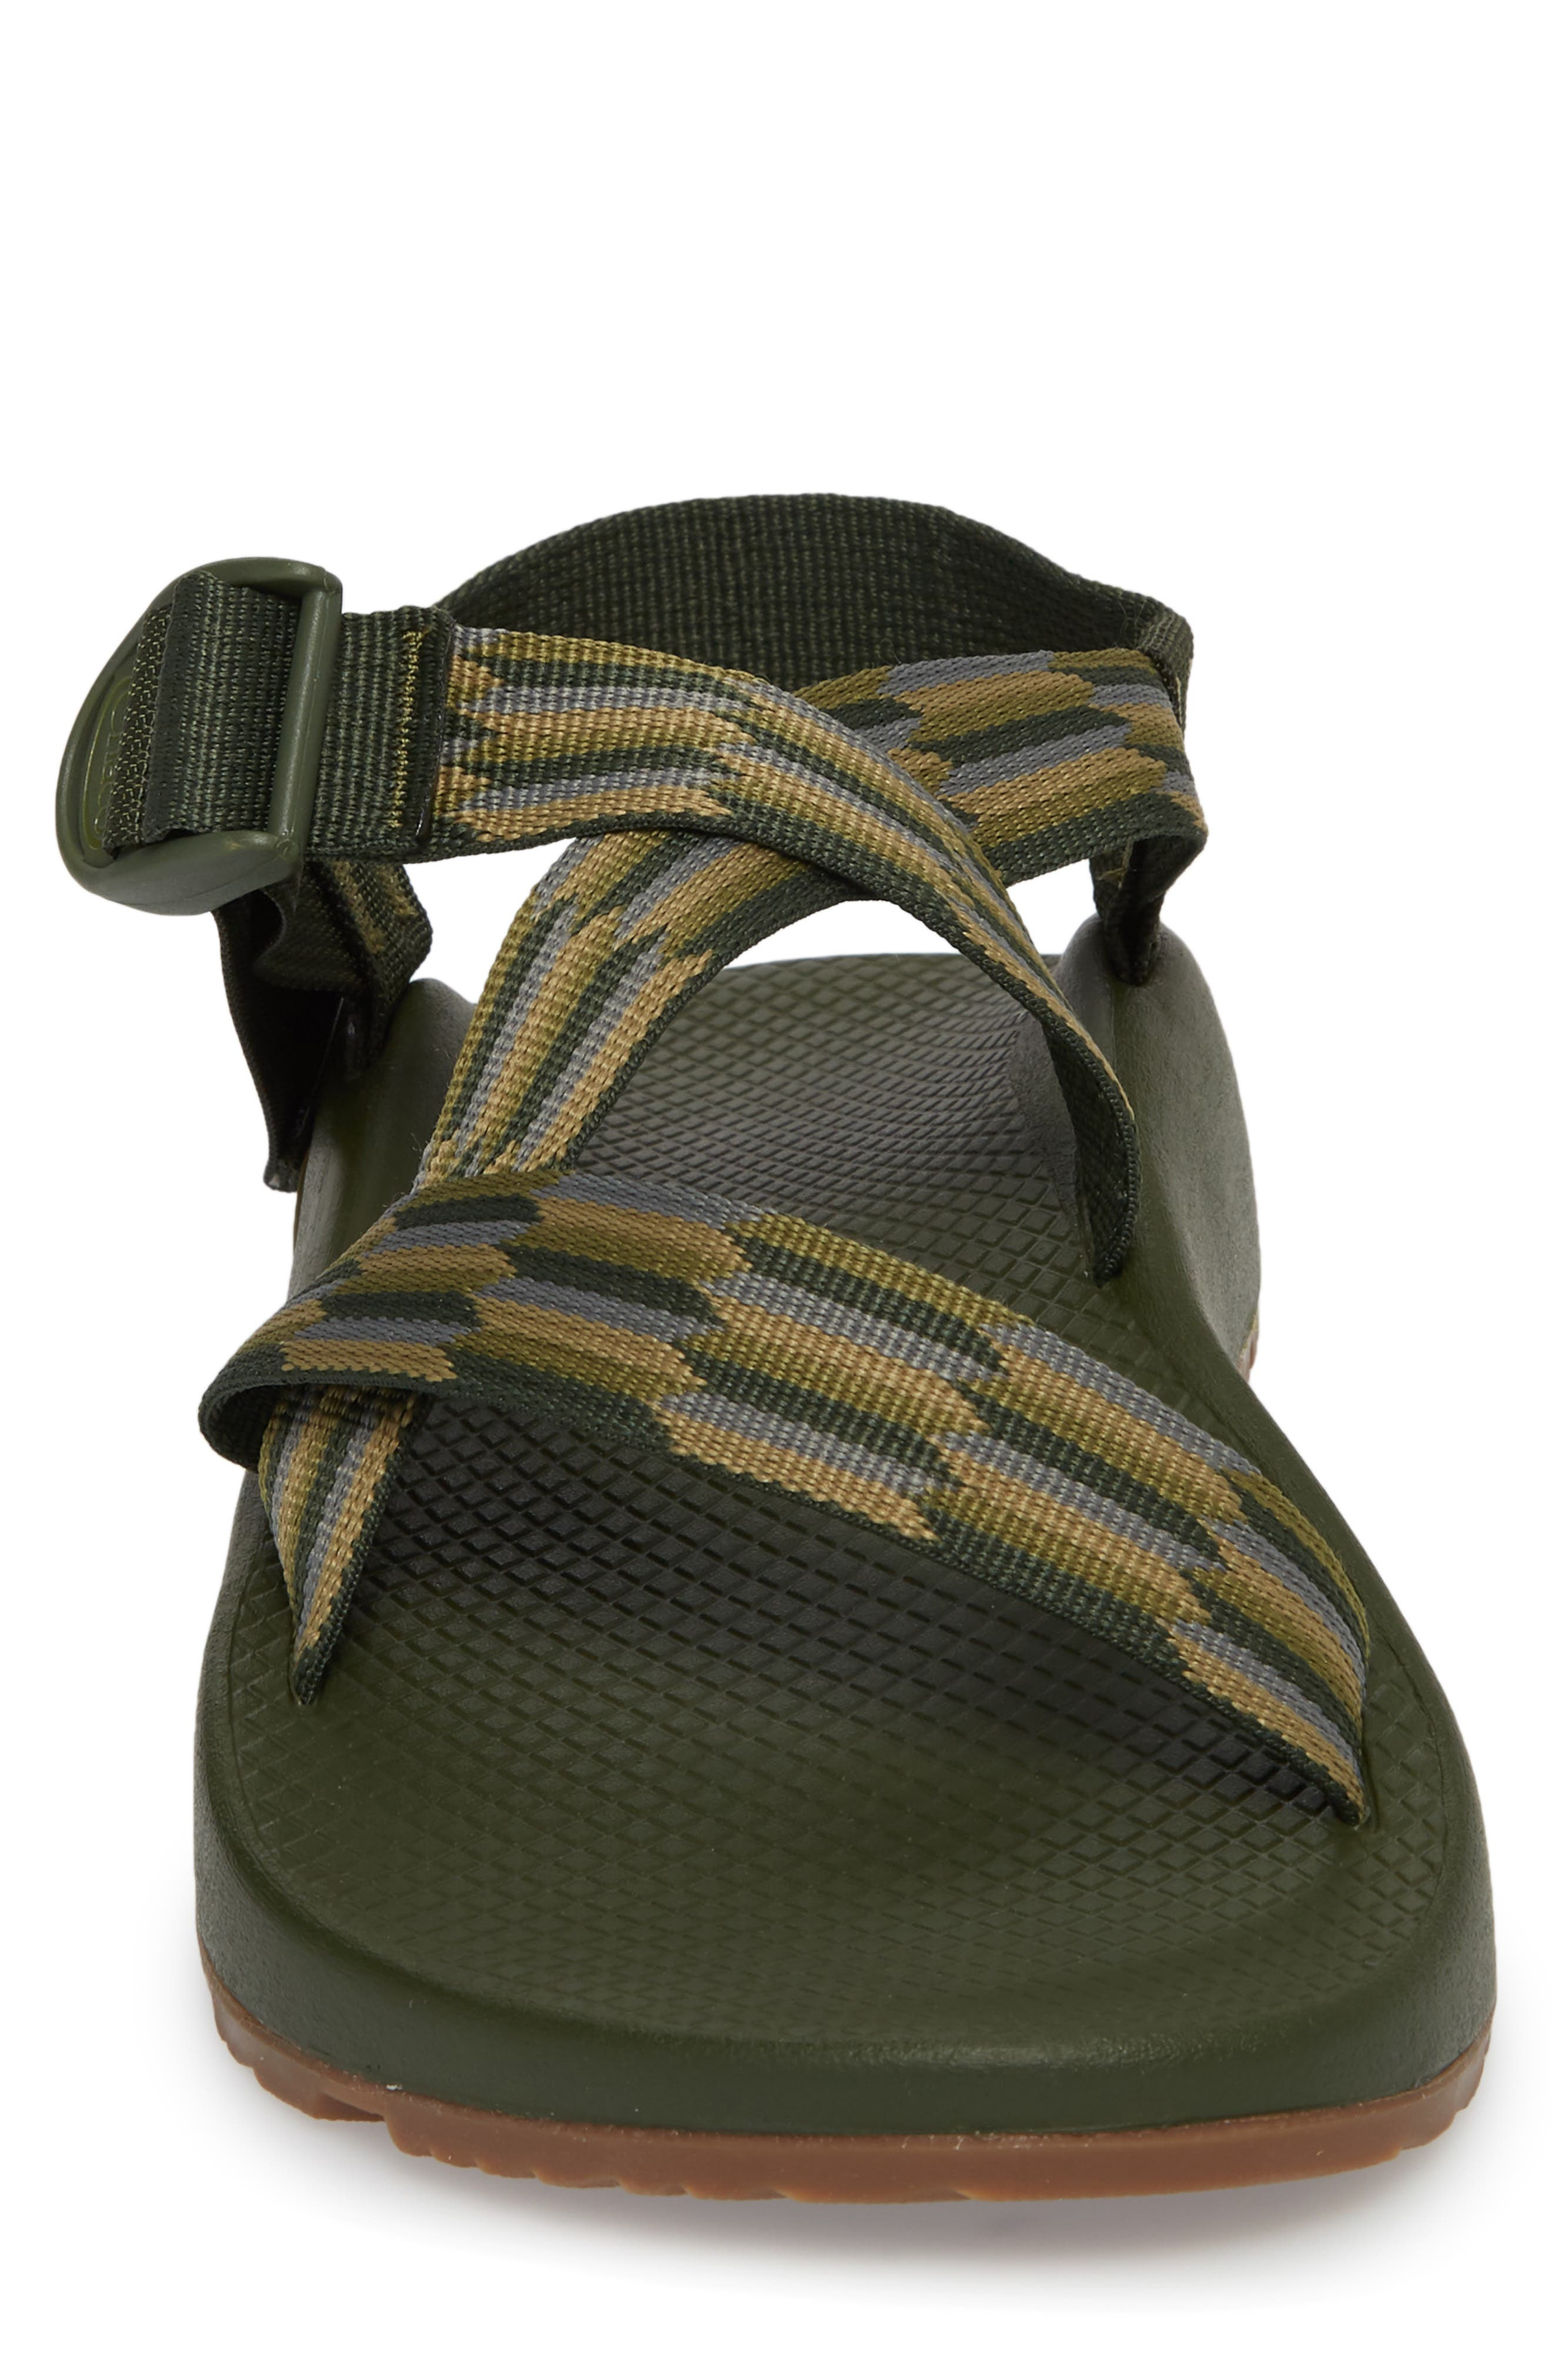 Alternate Image 4  - Chaco Z/1 Classic Sport Sandal (Men)